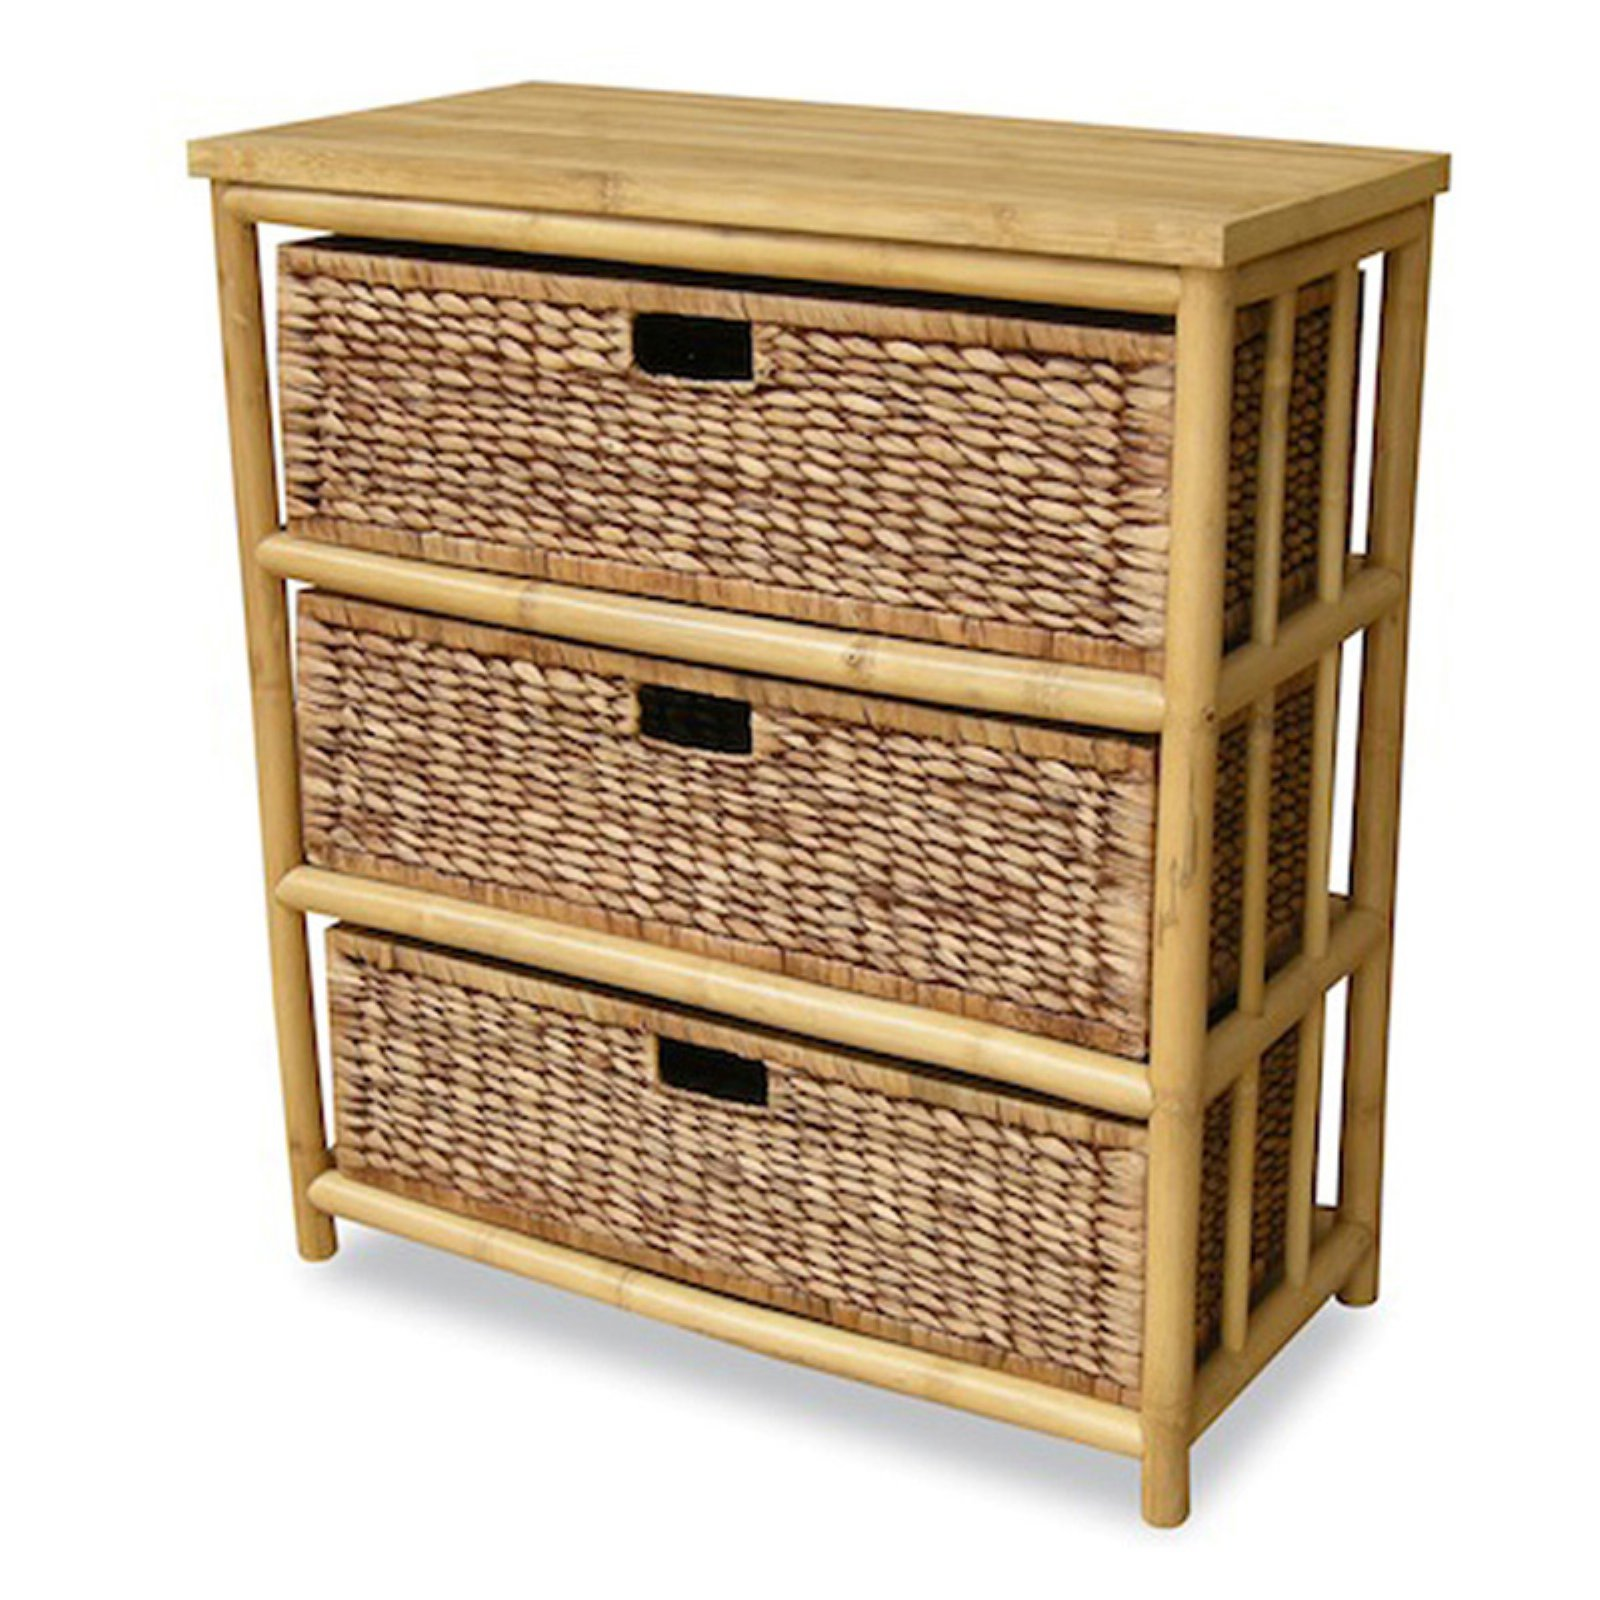 Heather Ann Creations Kona 3 Drawer Open Sided Bamboo Storage Cabinet